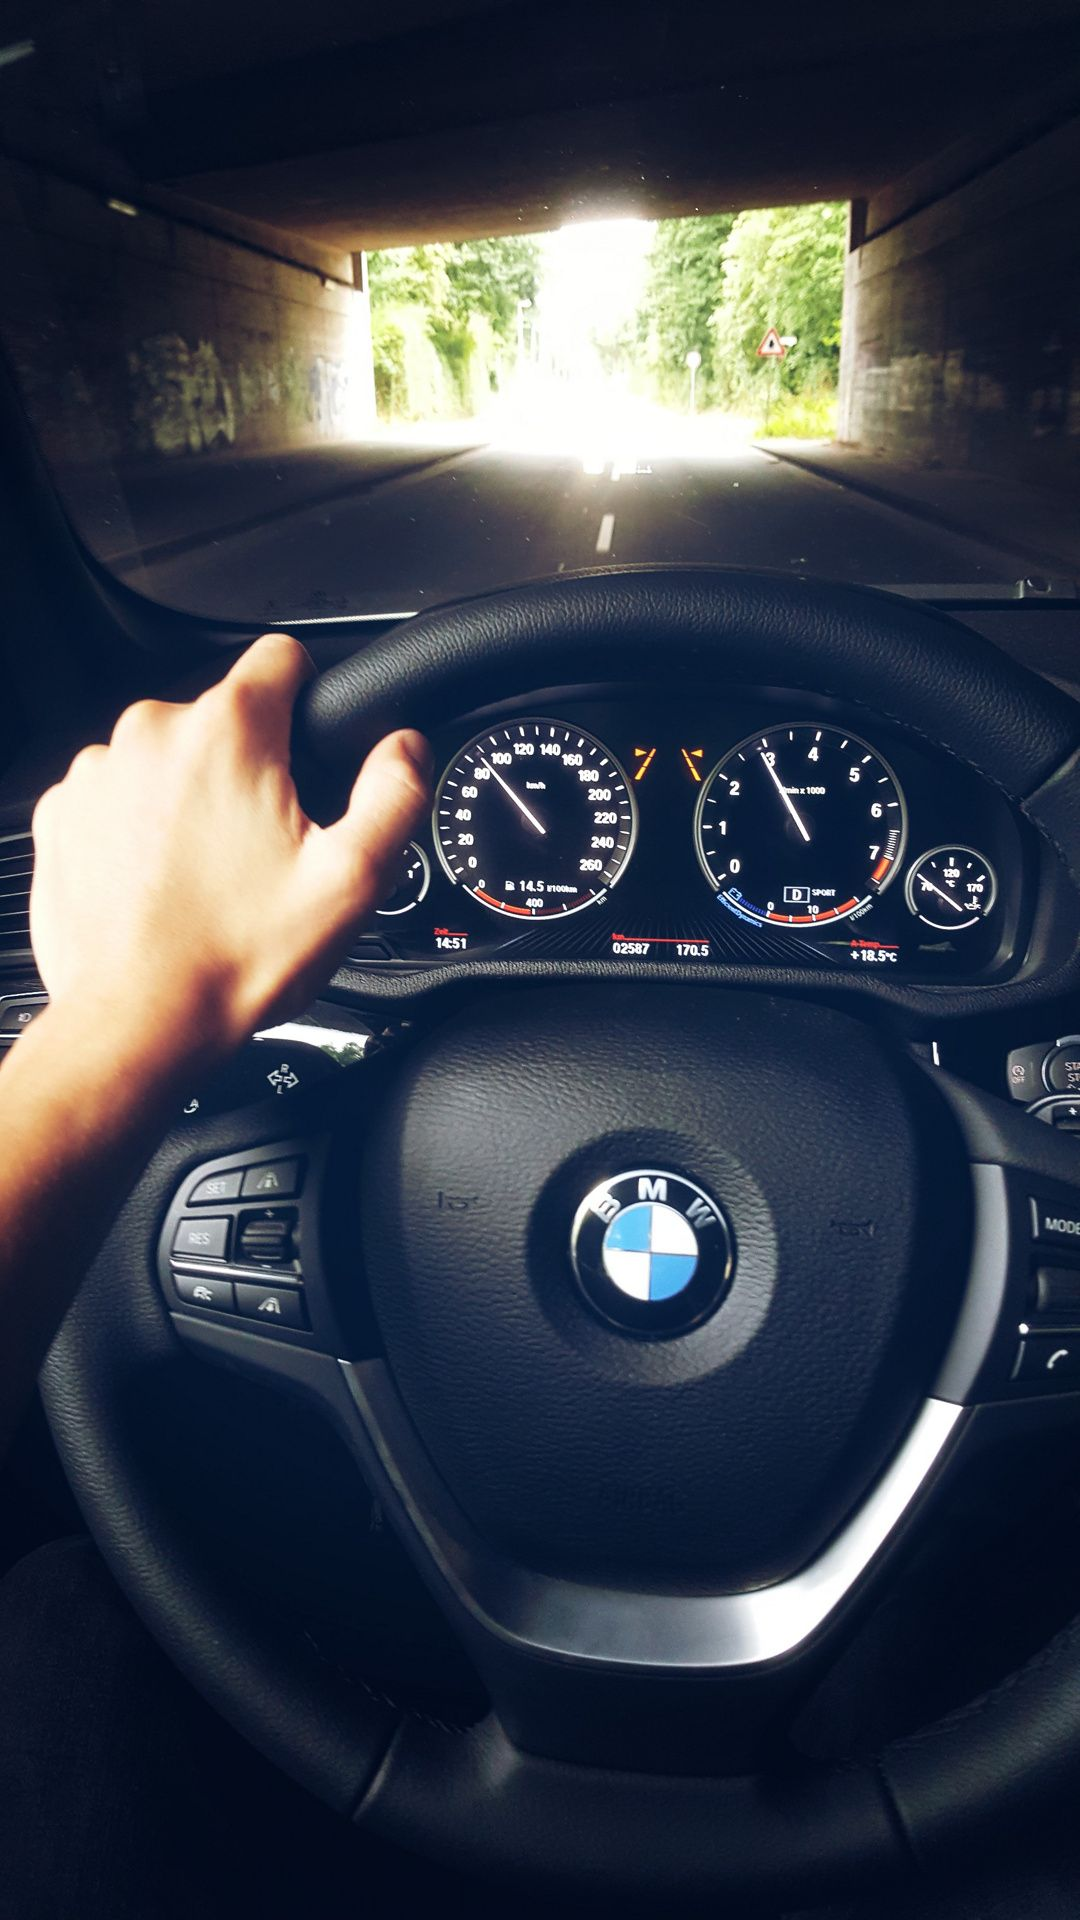 Bmw Driving Car Mobile Hd Wallpaper In 2020 Bmw Wallpapers Bmw Car Wallpaper For Mobile